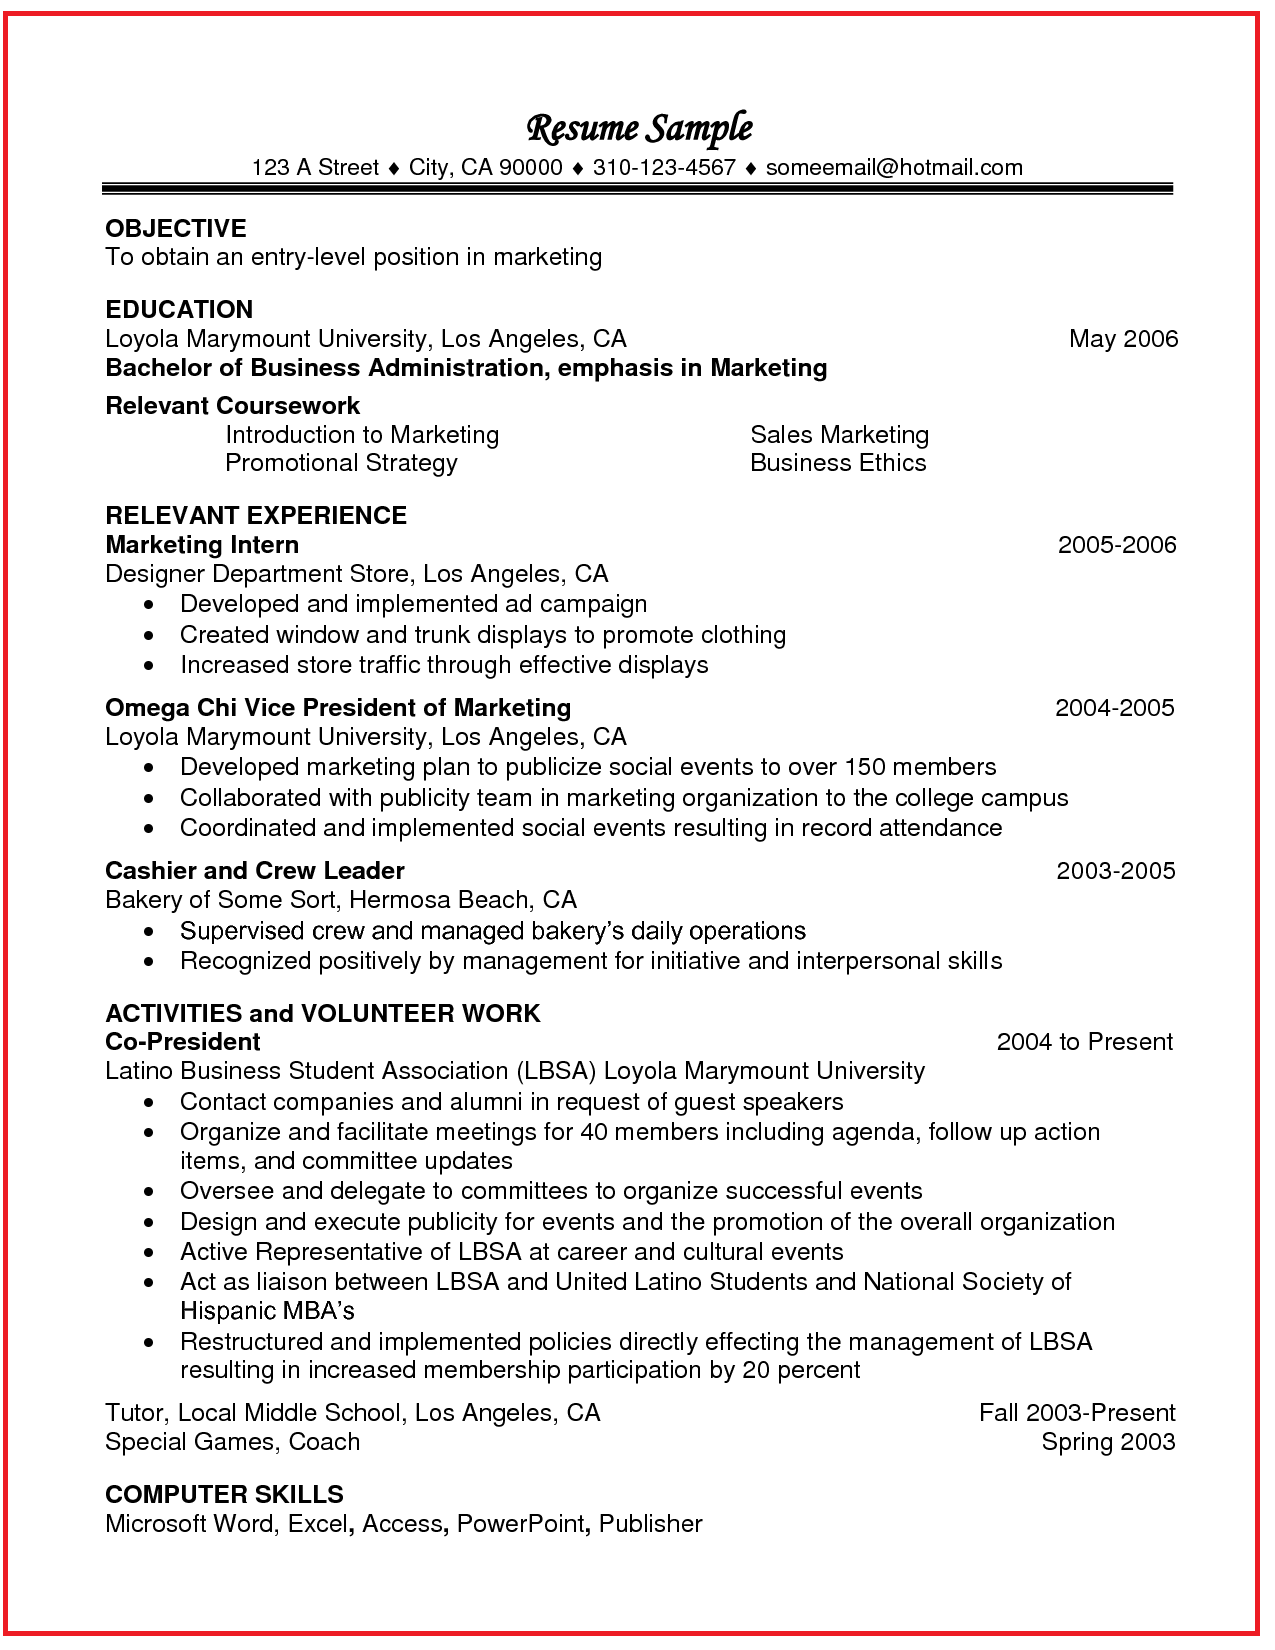 Current Resume Examples Pin By Resumejob On Resume Job Pinterest Resume Job